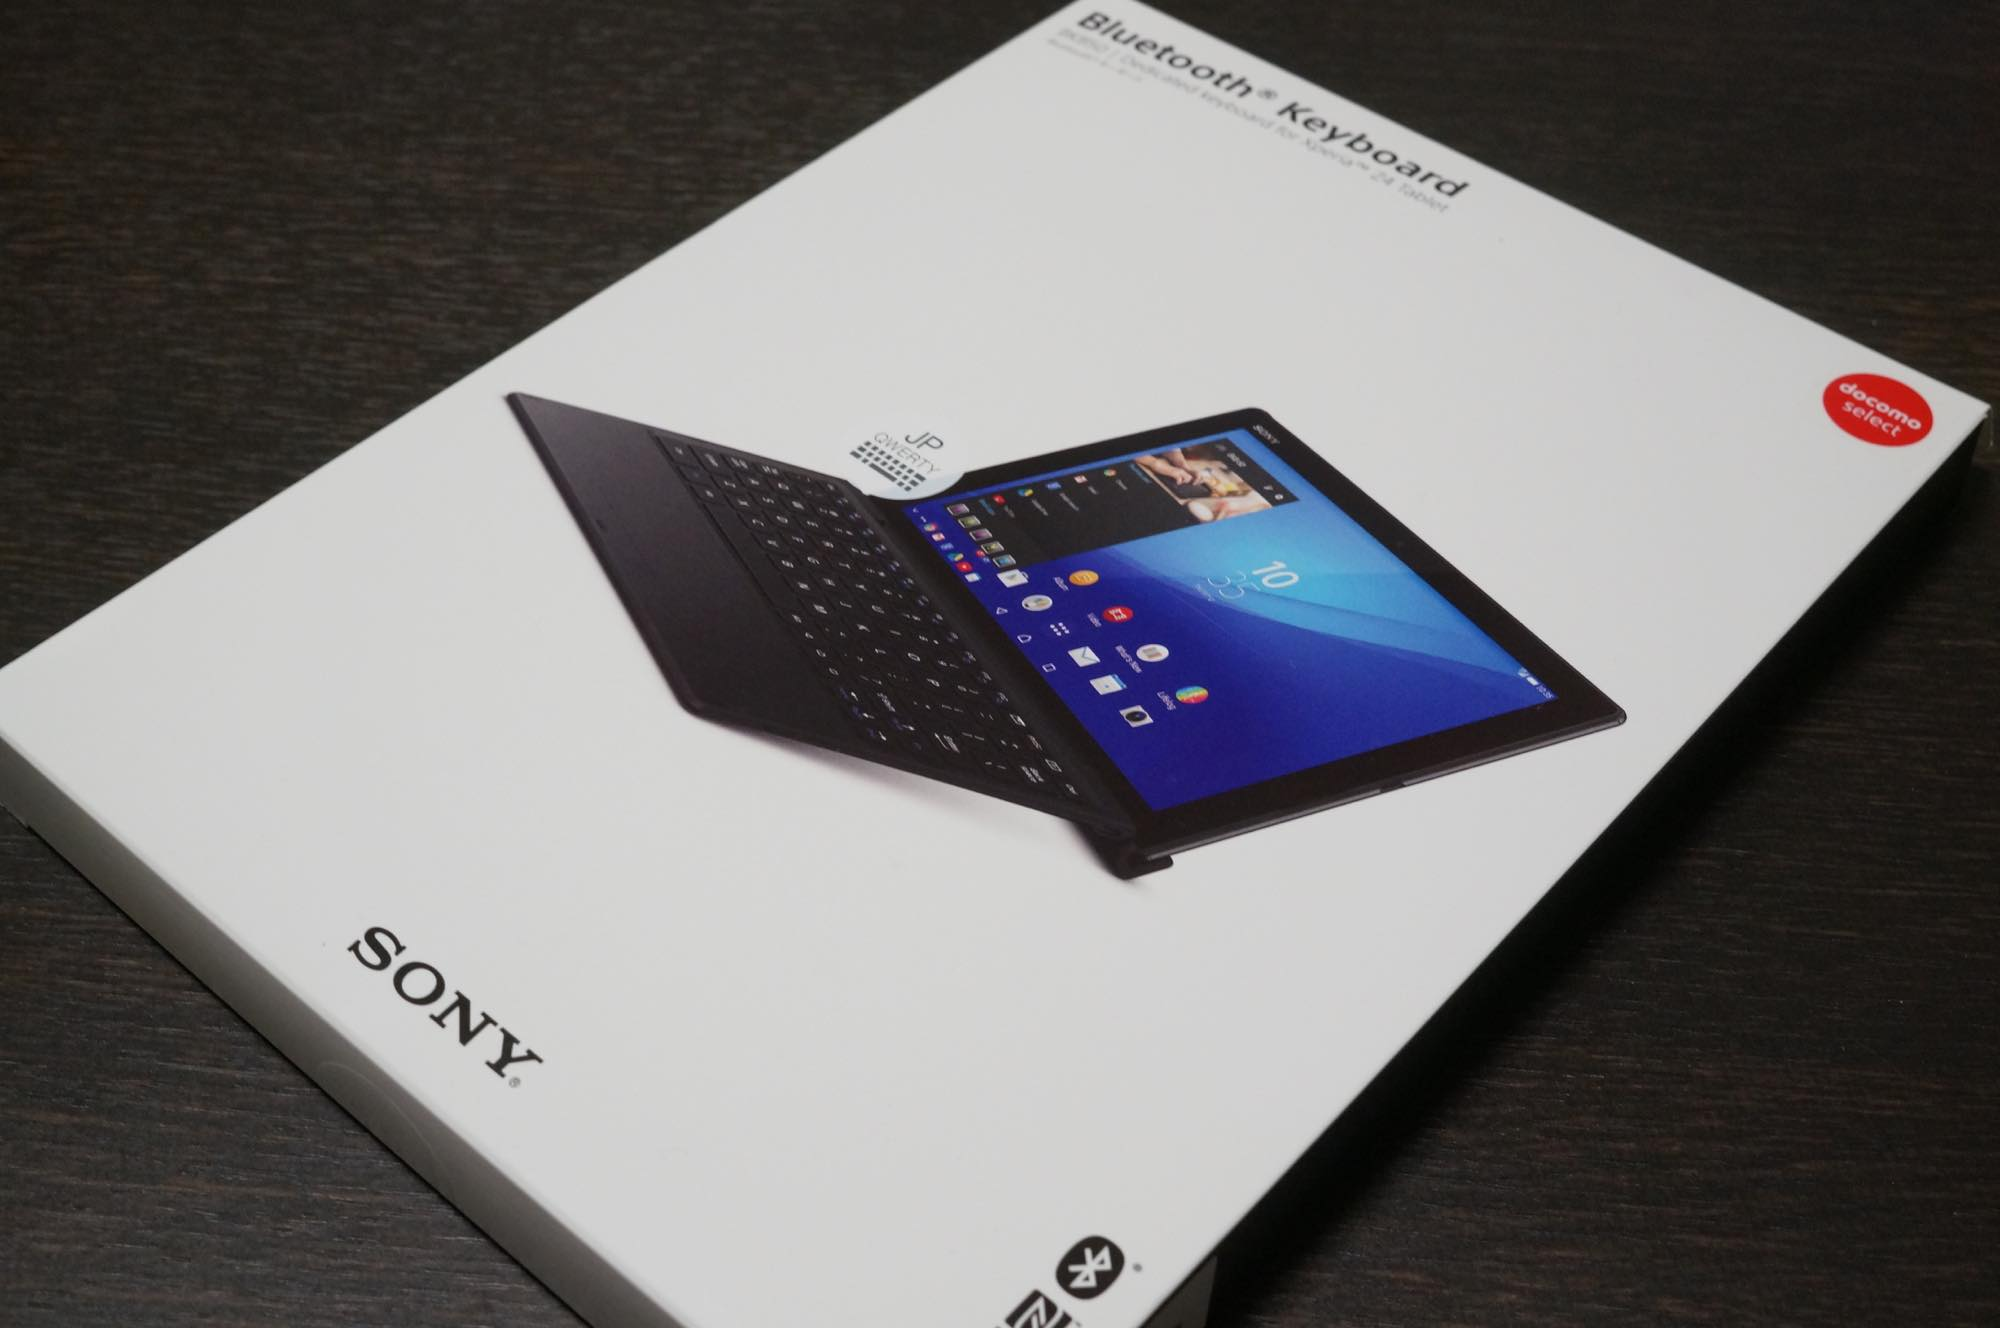 Xperia-Z4-tablet-keyboard11